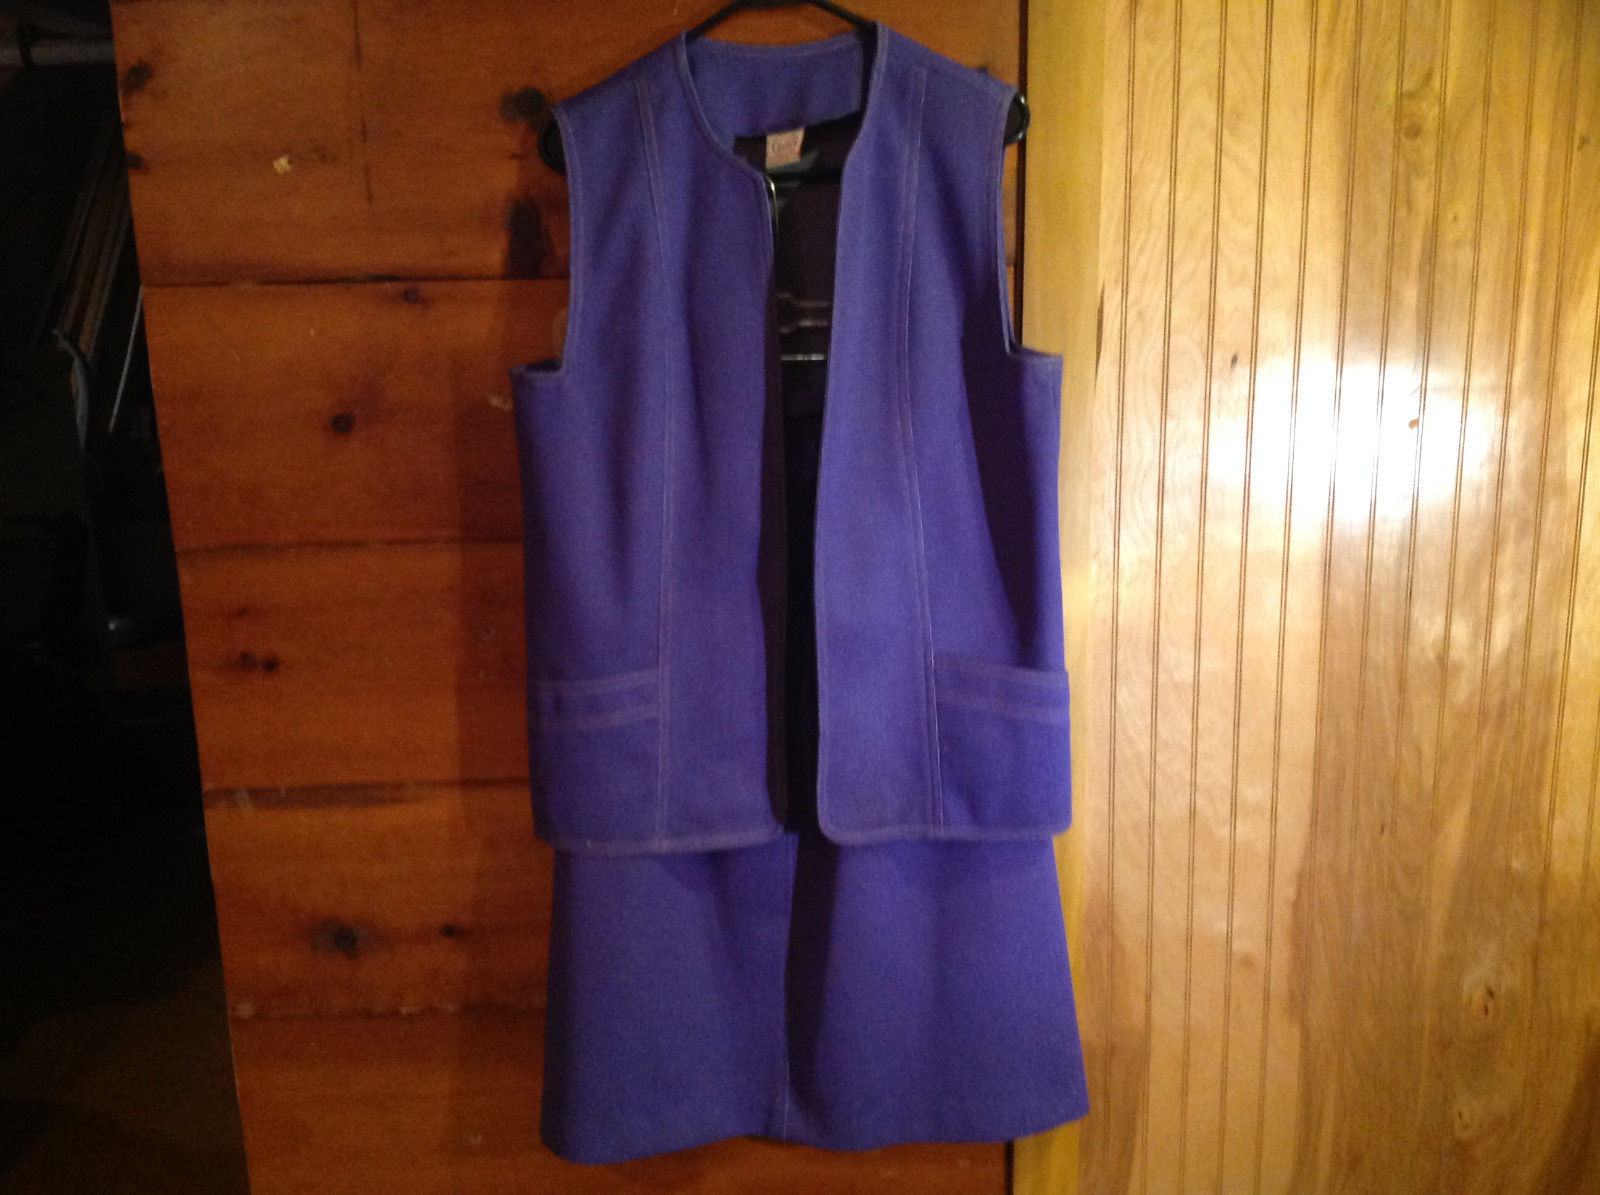 2 PC Blue Violet Open Vest Skirt Set Graff Californiawear Vest SZ  L Skirt SZ M